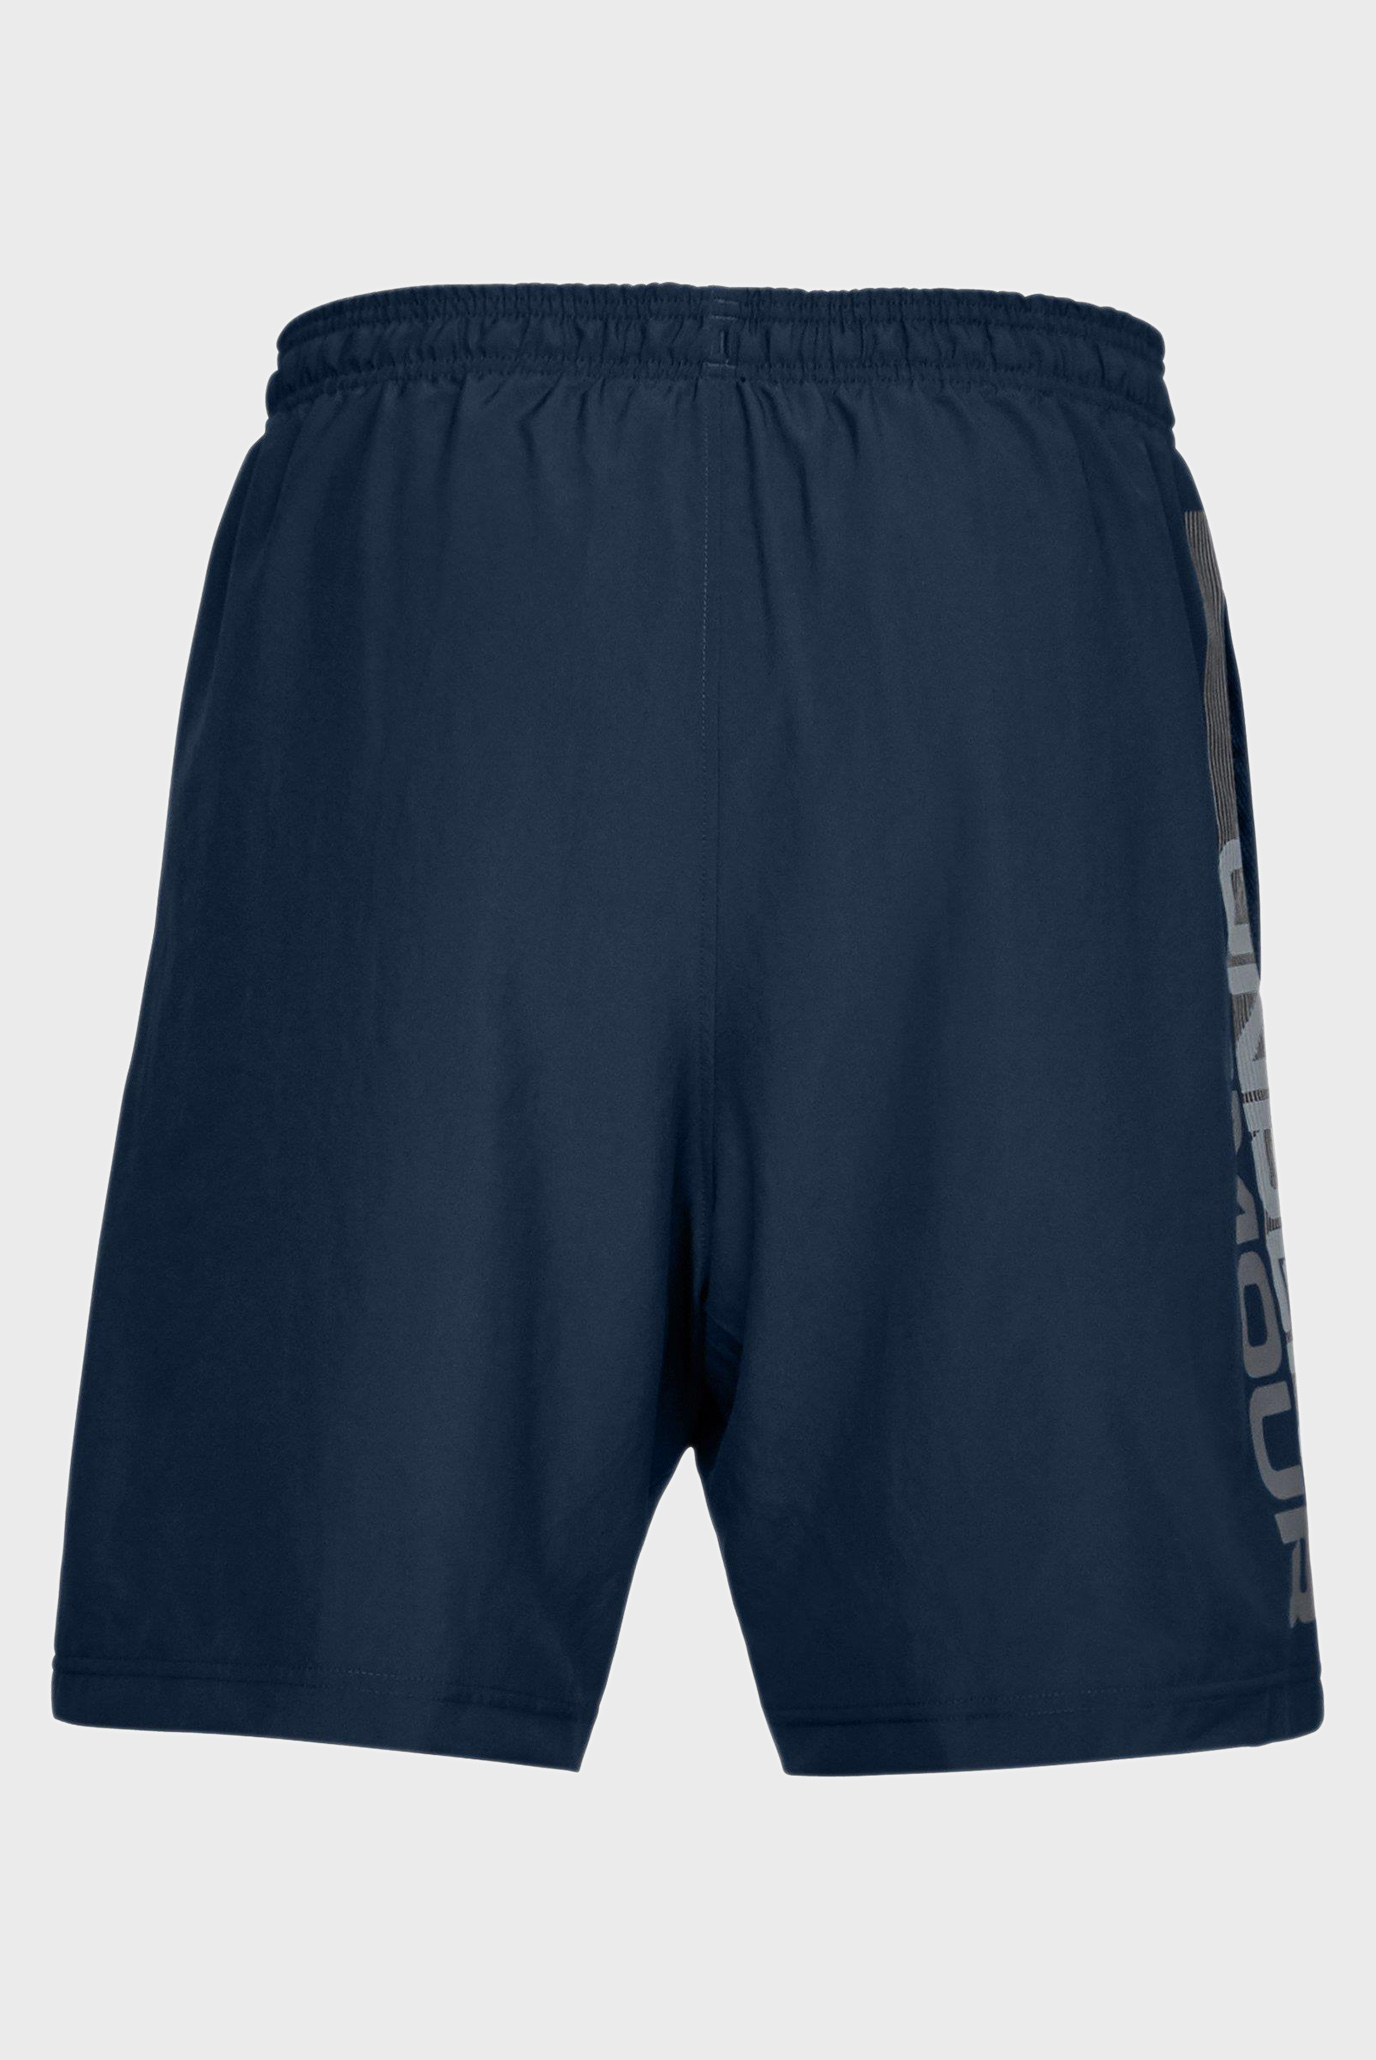 Мужские синие шорты Woven Graphic Wordmark Short Under Armour